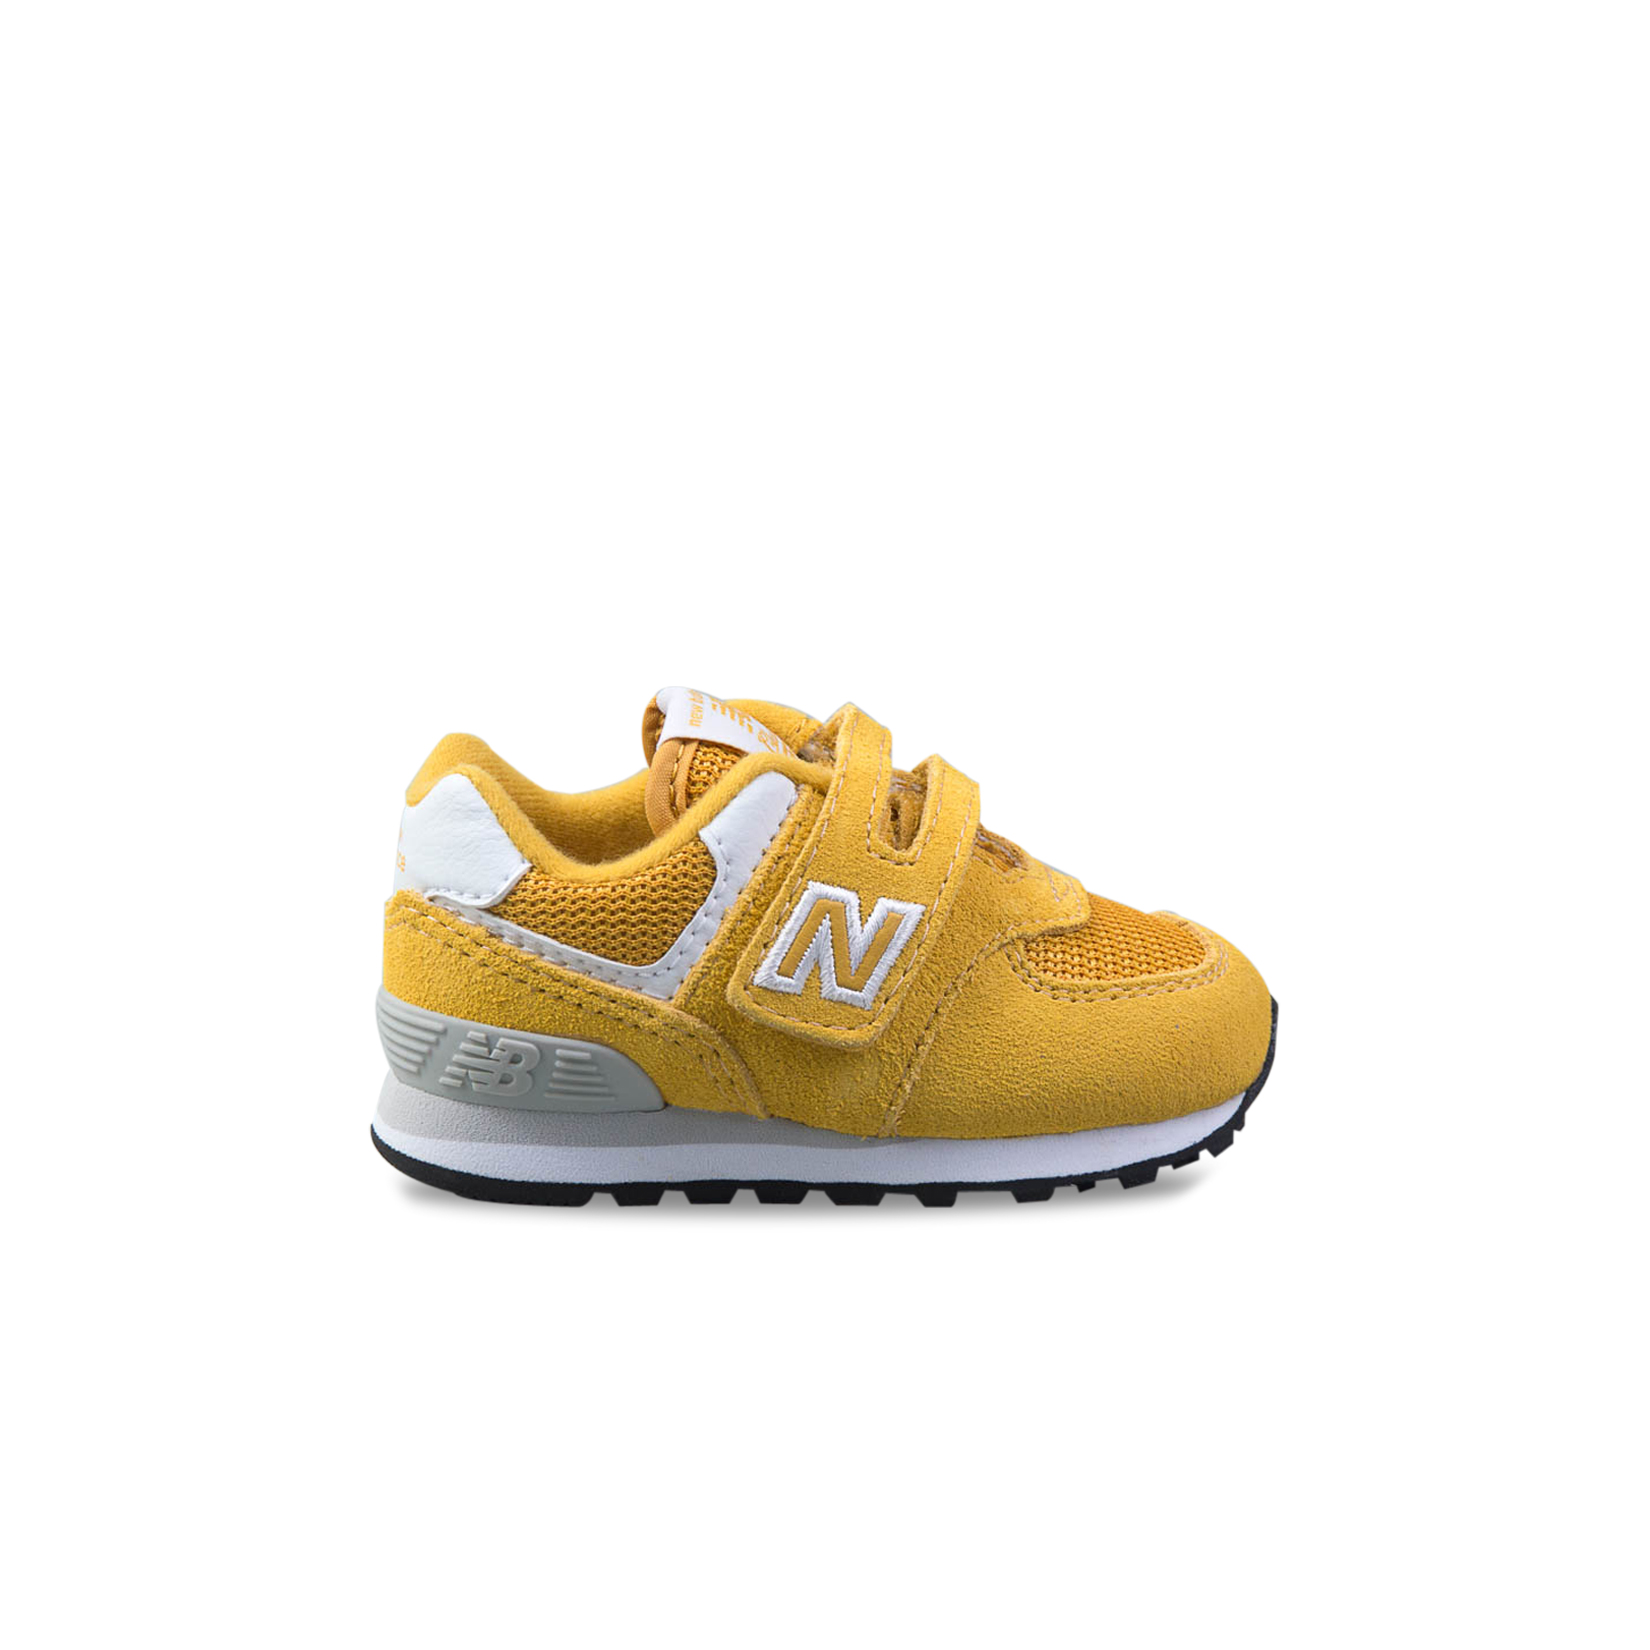 online store 0bf4c 052de Baby Shoes New Balance 574 Mustard / Yellow | All-Sports.gr